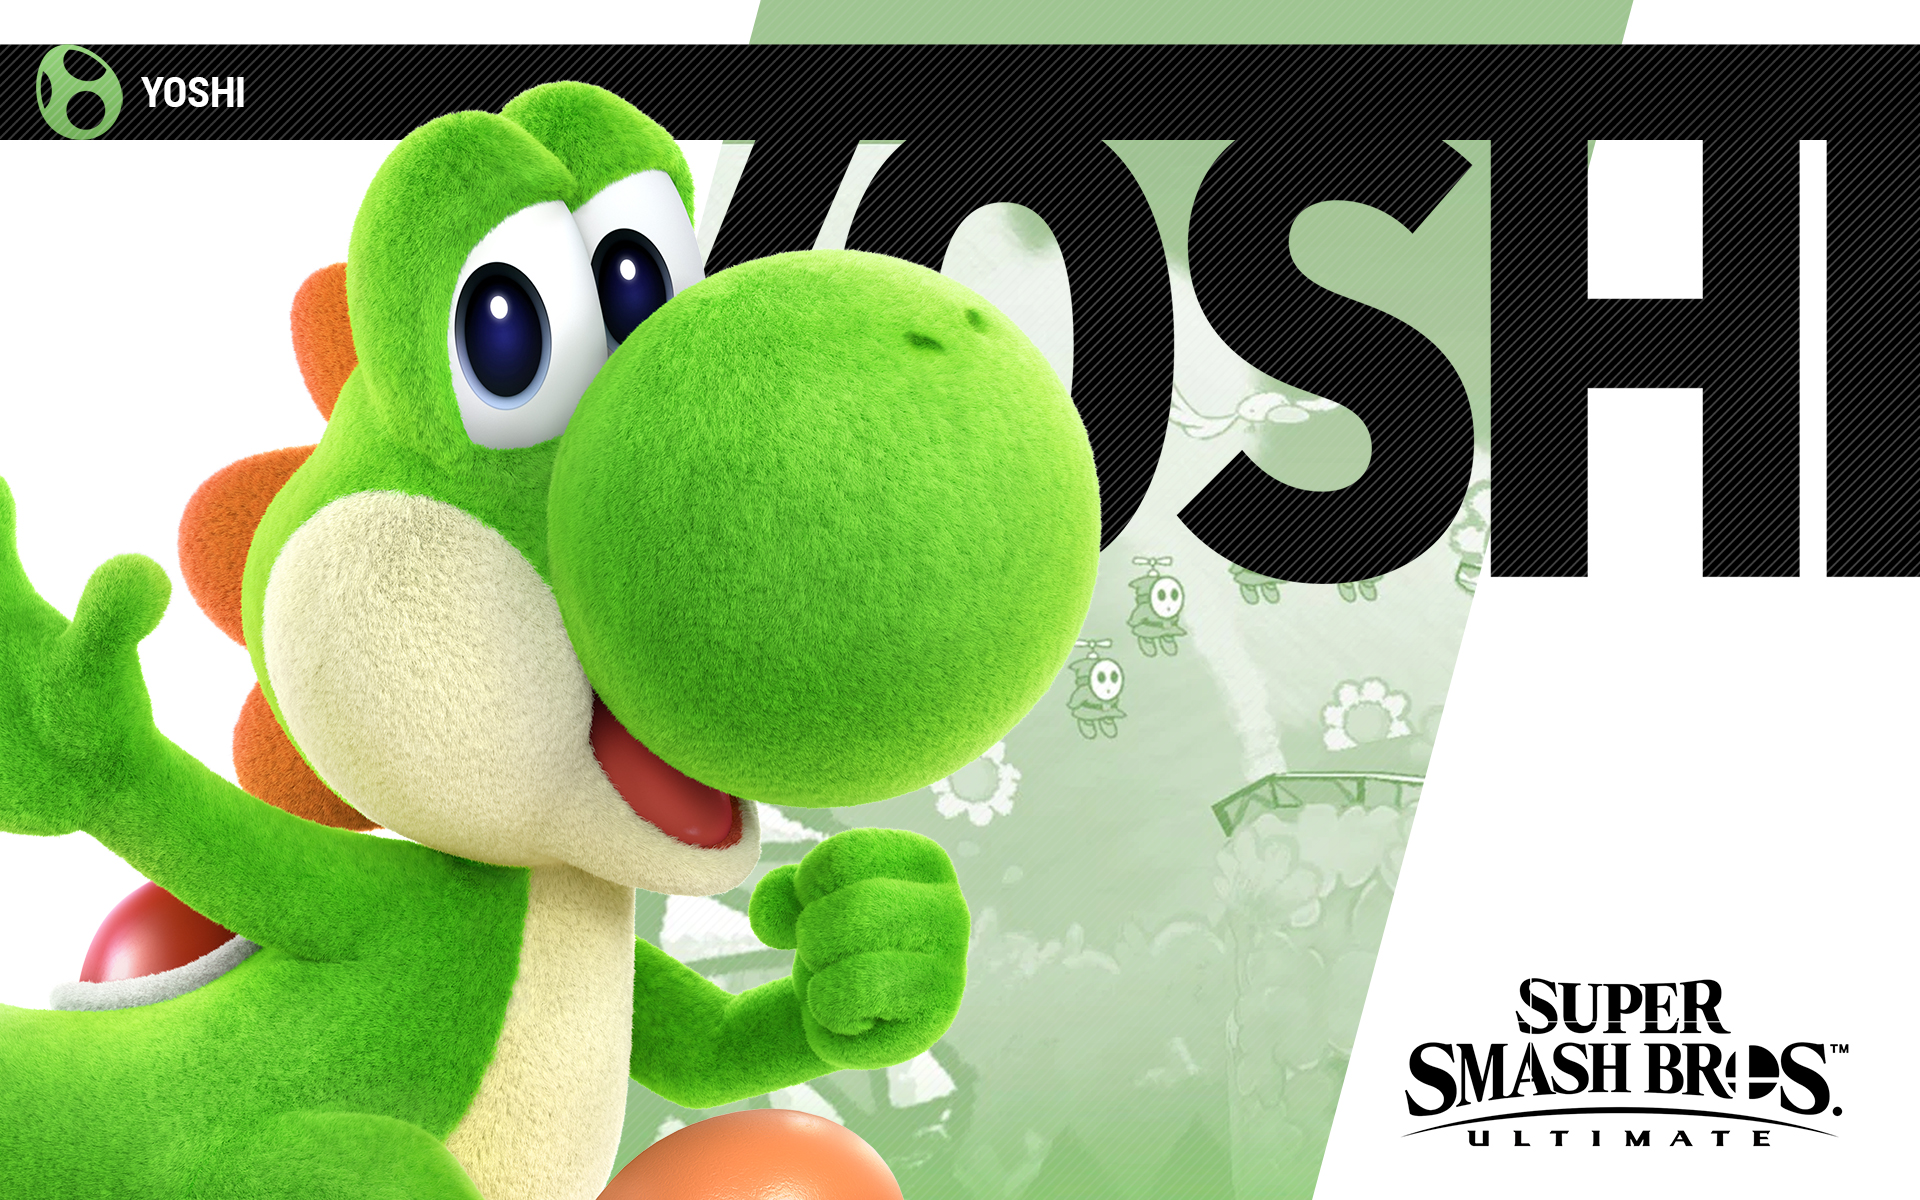 Samsung Galaxy Animated Wallpaper Super Smash Bros Ultimate Yoshi Craft Wallpapers Cat